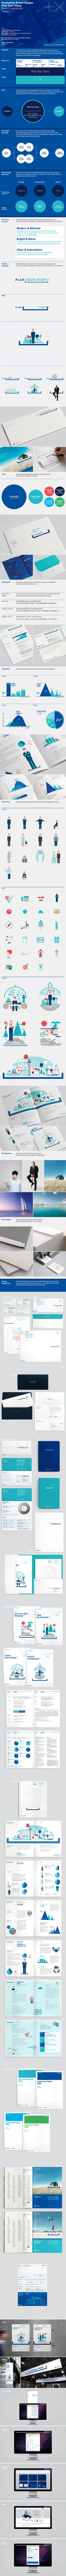 "Prudential ""Plan Your Story"" Brand Identities / http://www.behance.net/plusx"